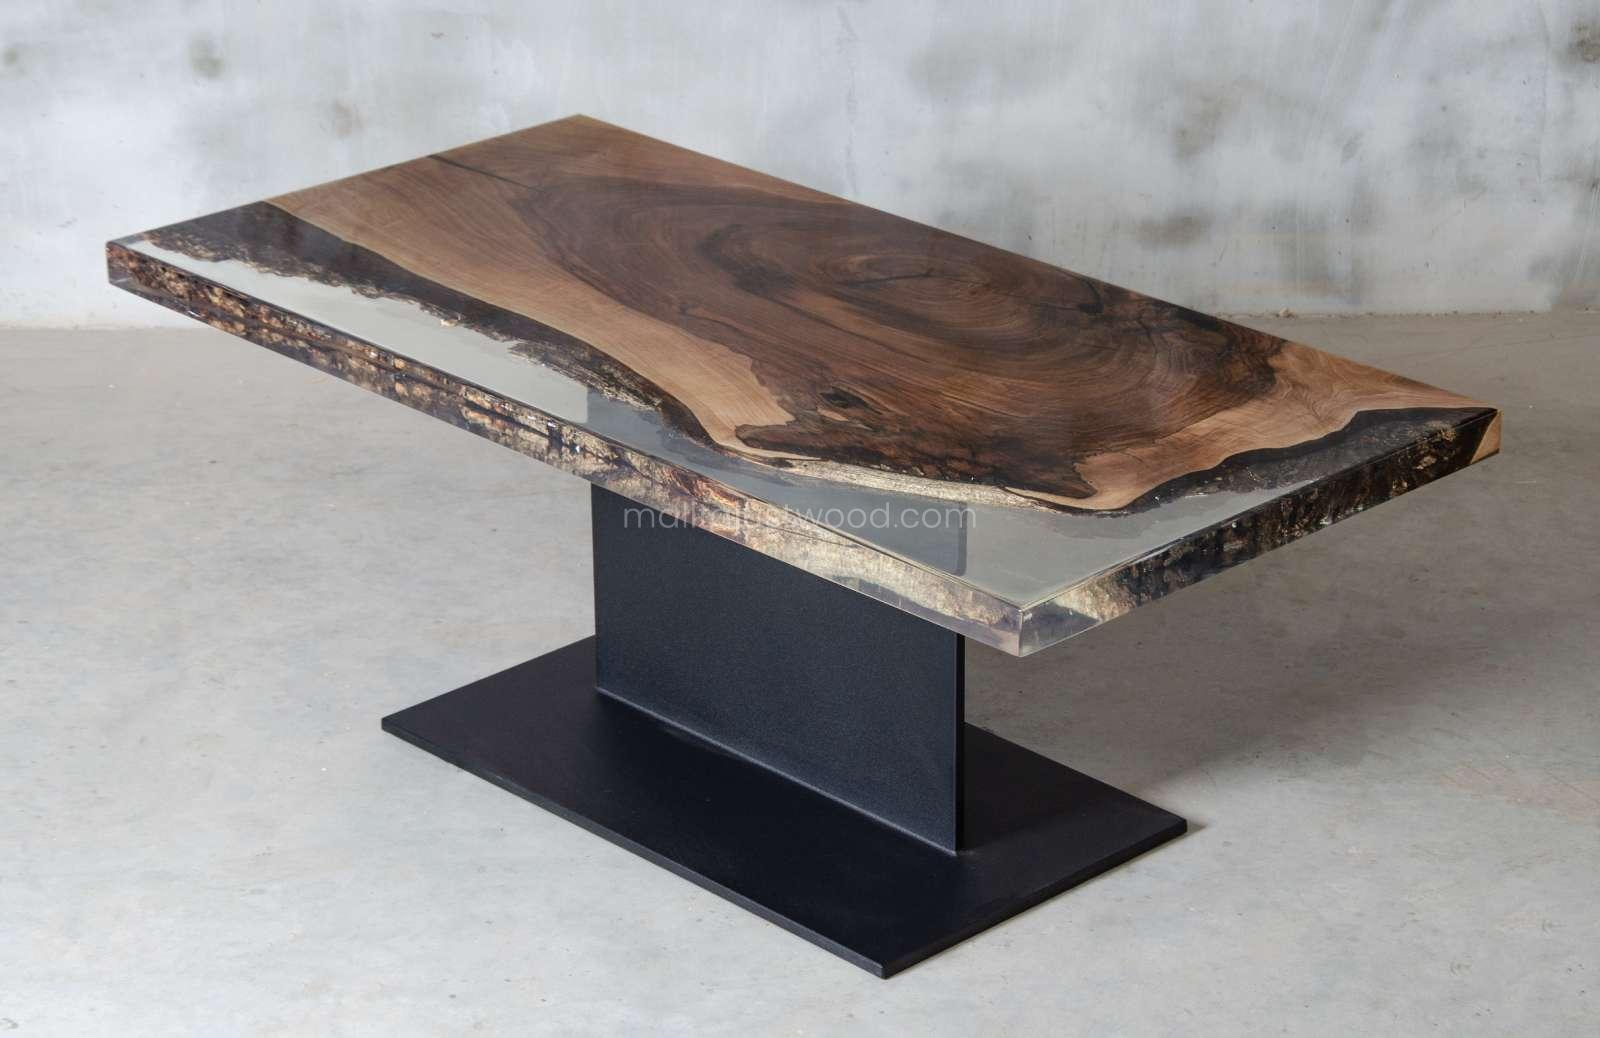 one of a kind Sublimis table of epoxy resin